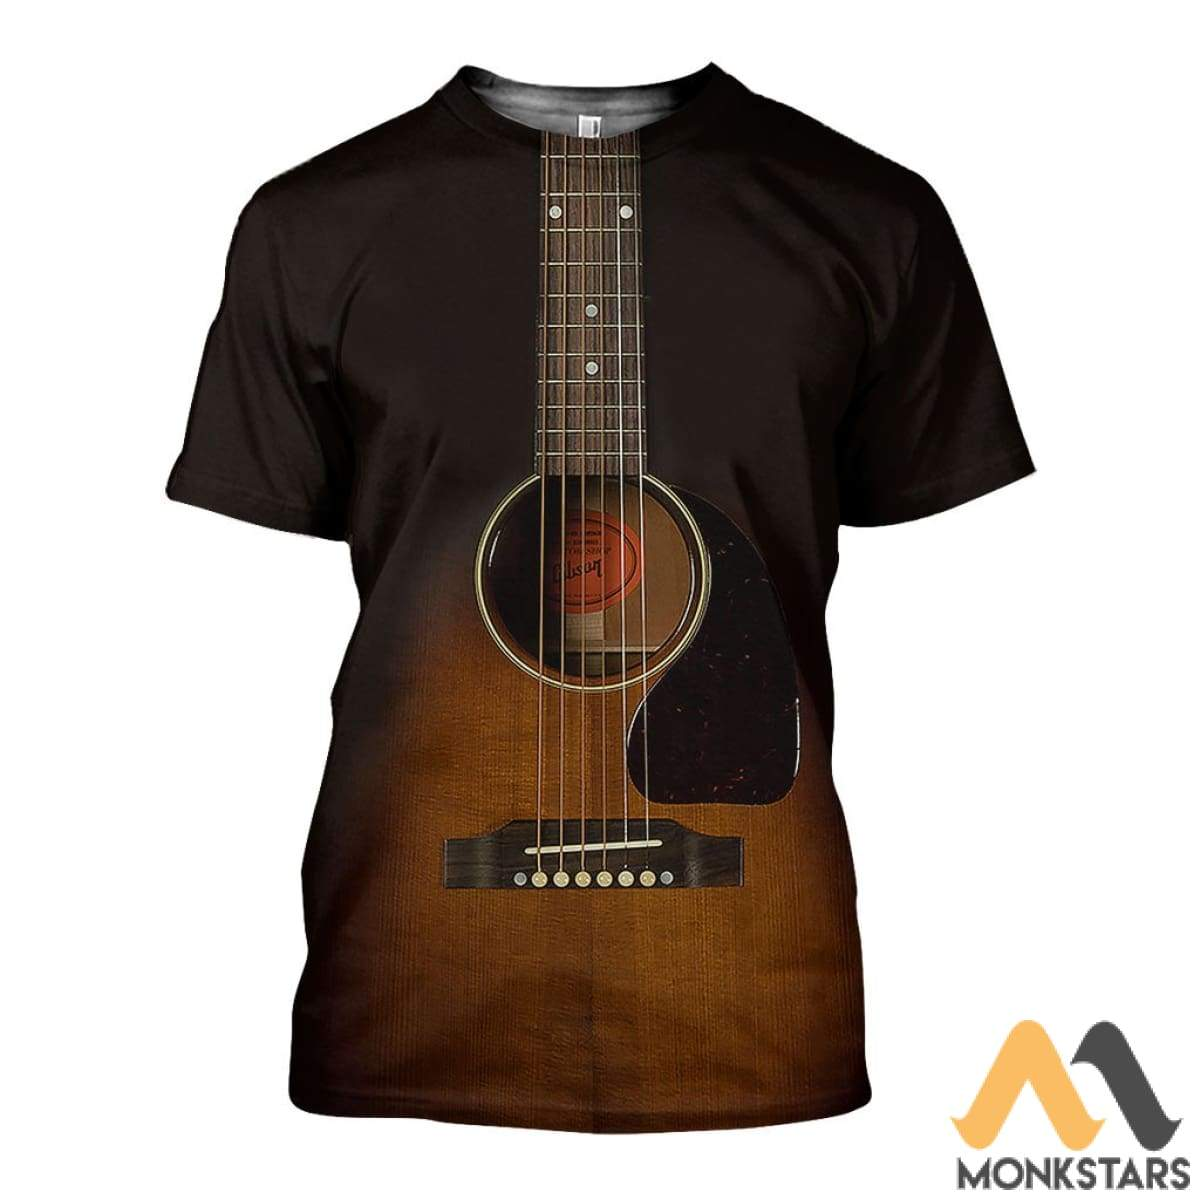 3D All Over Printed Guitar Art Shirts And Shorts T-Shirt / Xs Clothes